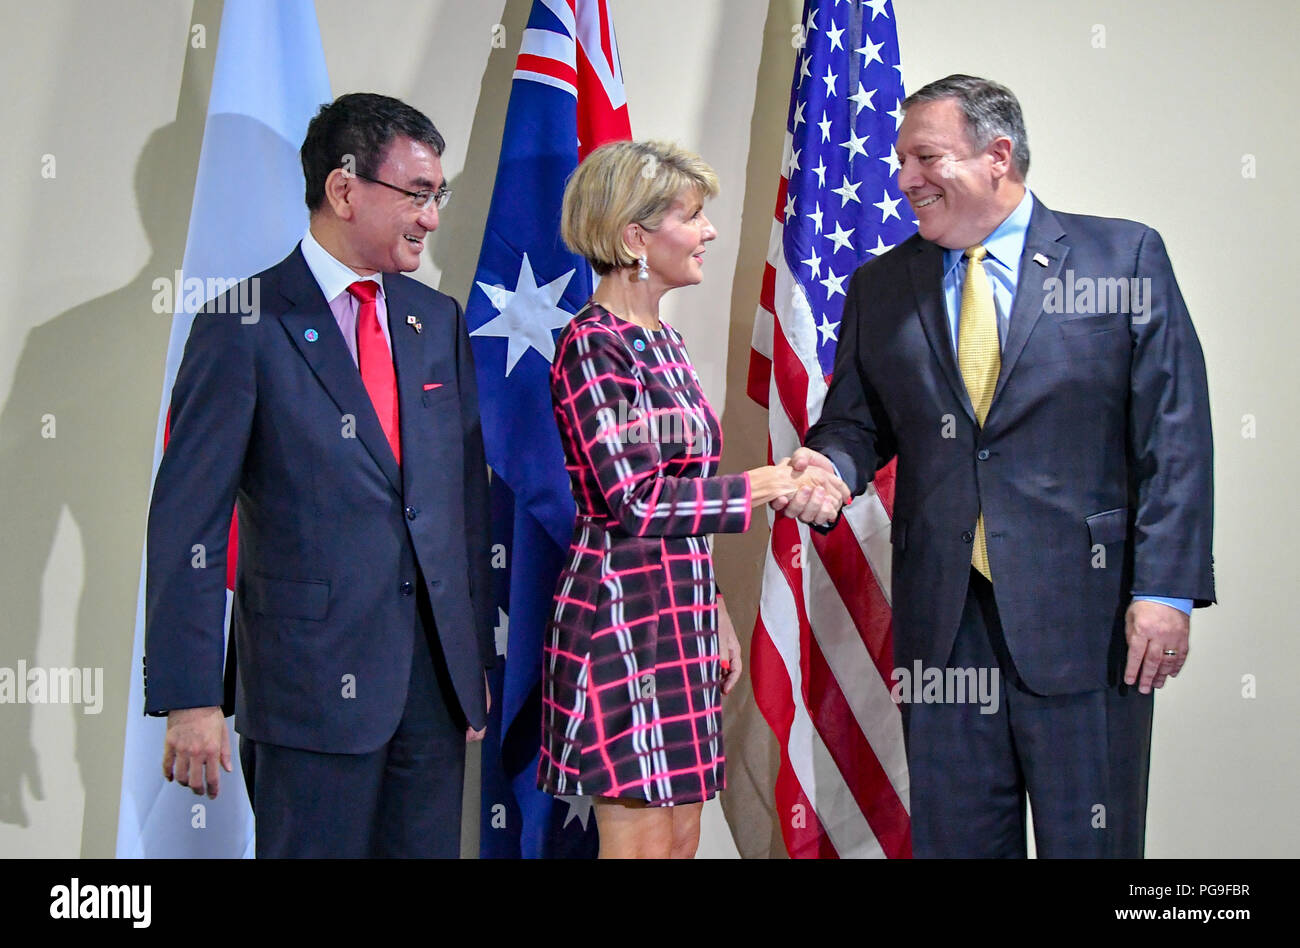 Secretary of State Michael R. Pompeo joins a Trilateral Strategic Dialogue Australian Minister for Foreign Affairs Bishop and Japanese FM Kono at ASEAN in Singapore, Singapore, August 4, 2018. - Stock Image